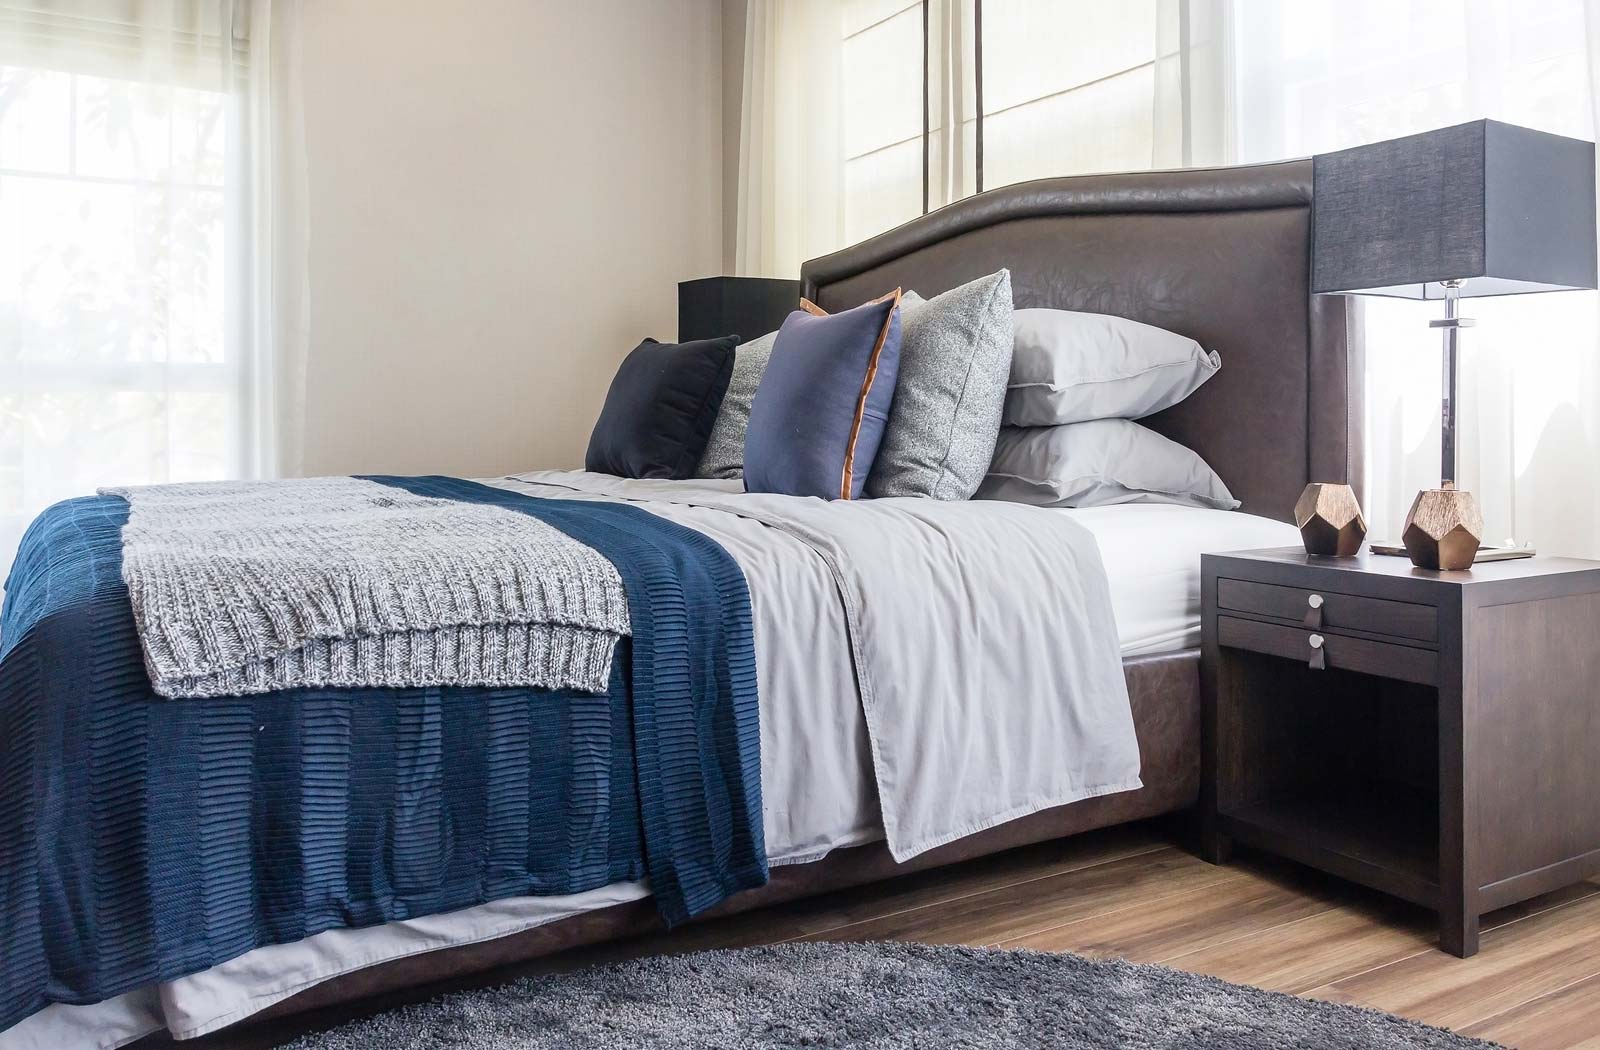 Close up of a bedroom used in home staging